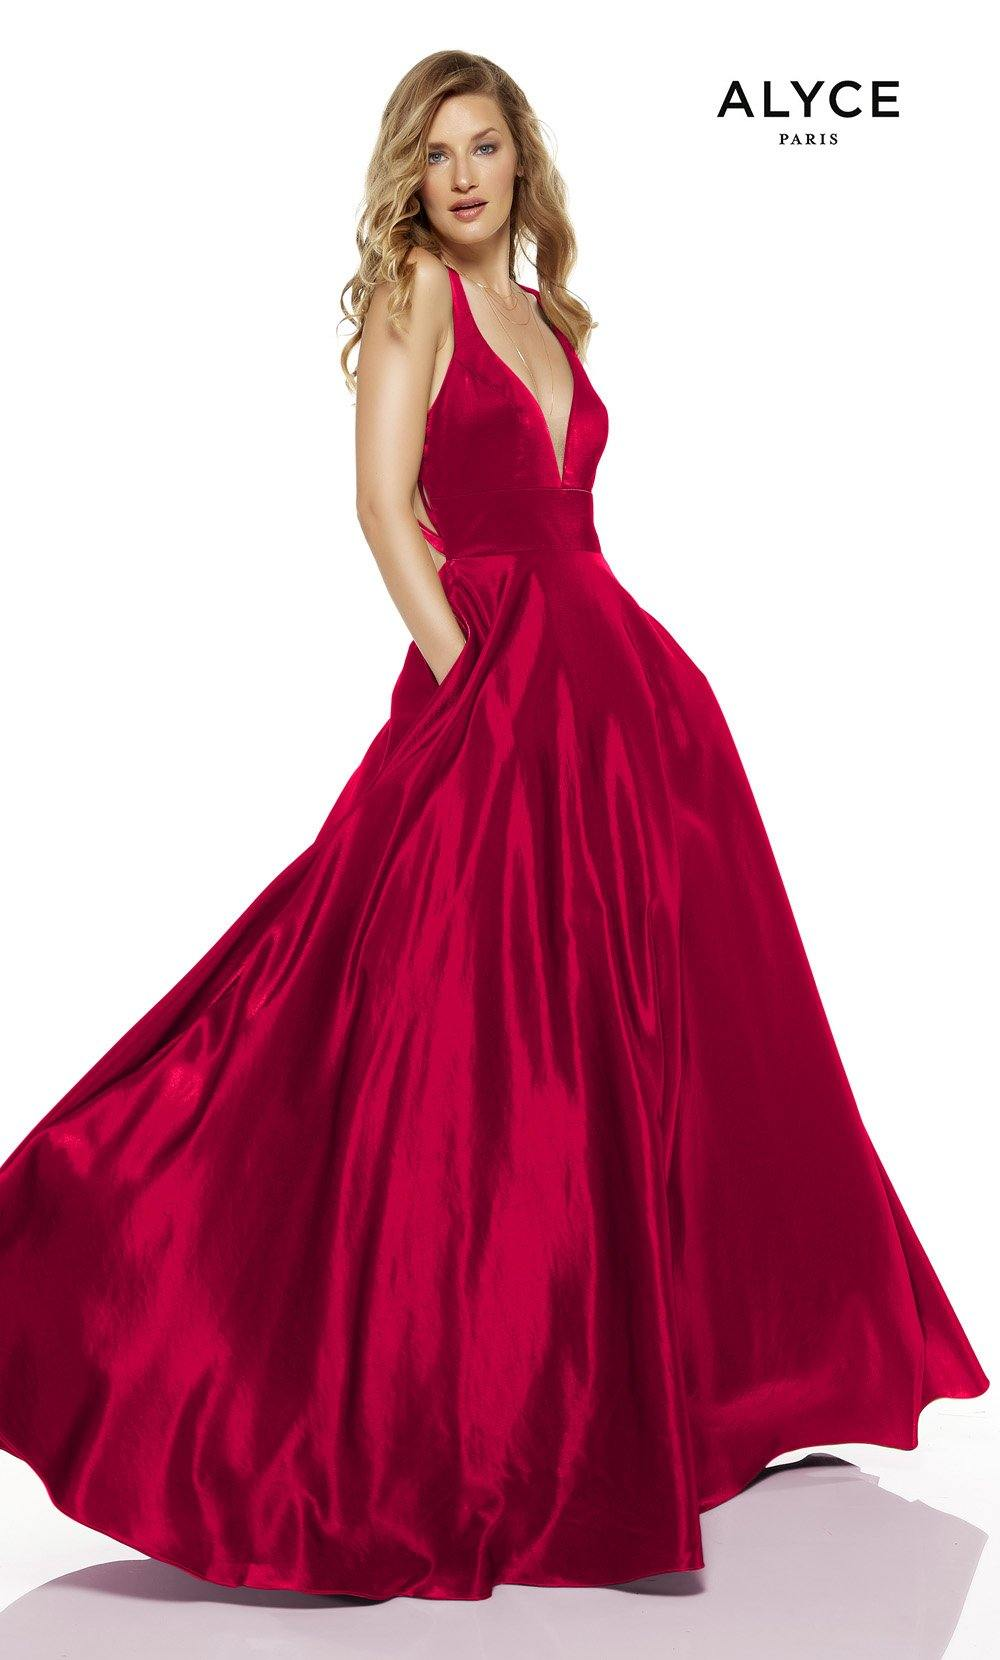 Red formal dress with pockets and a plunging neckline